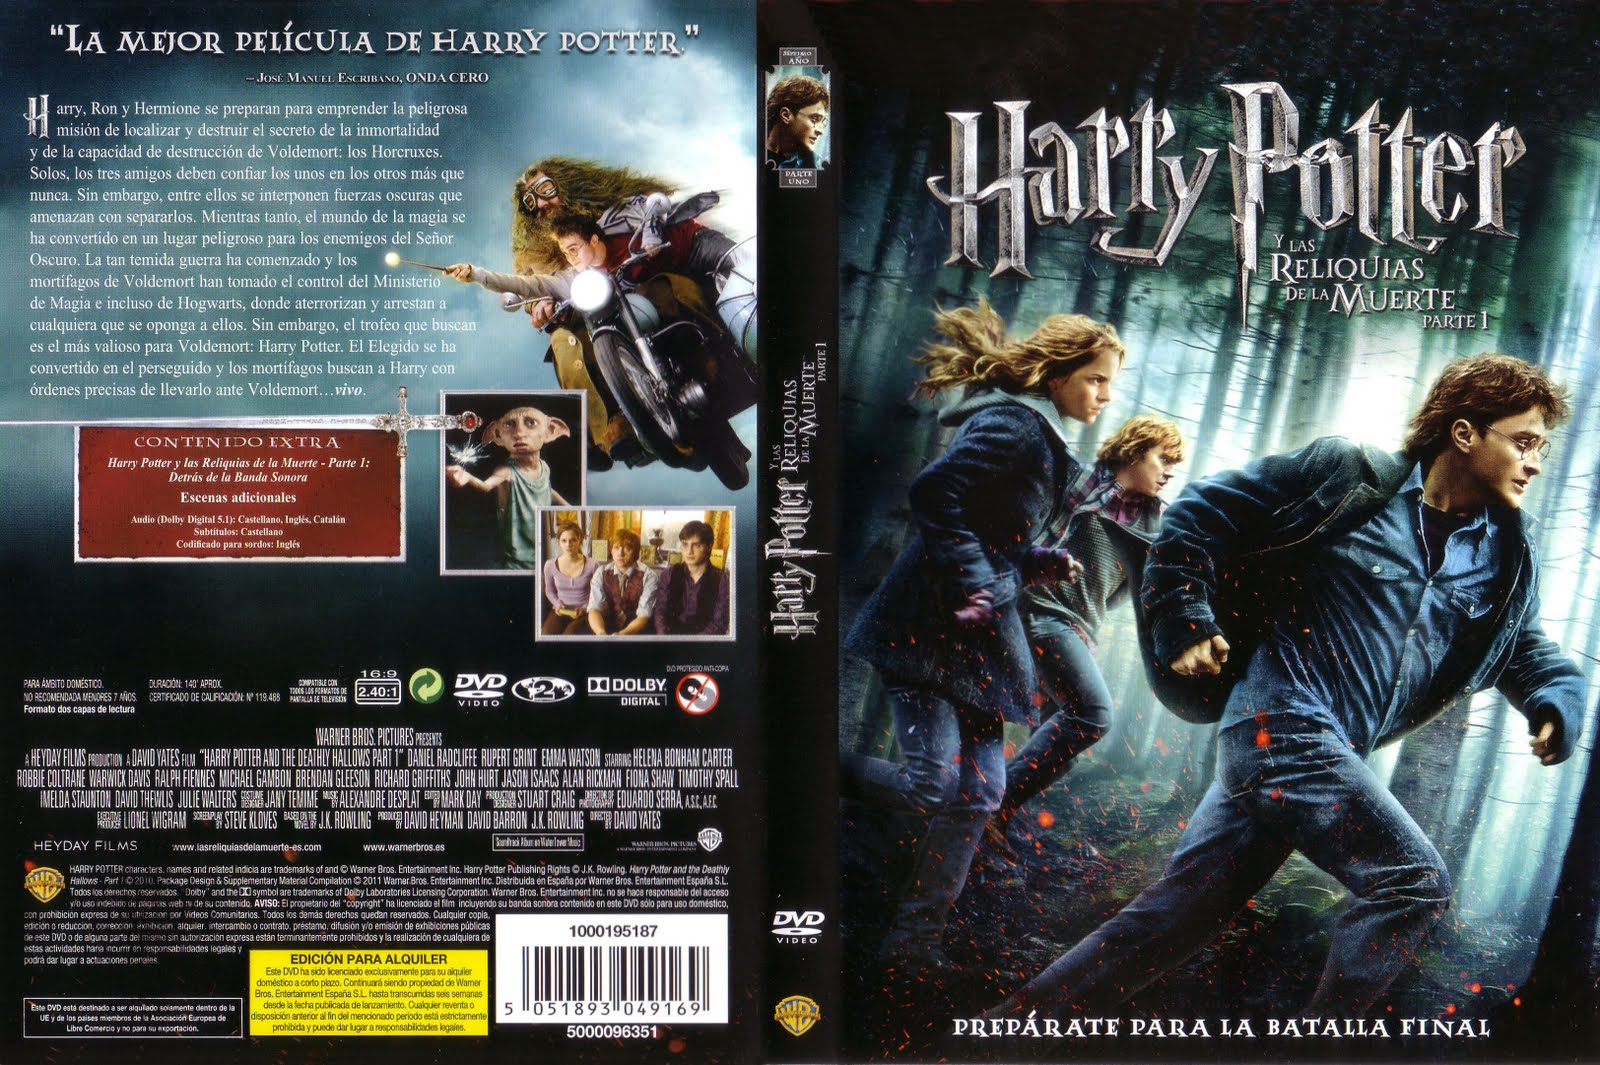 Harry Potter Libro 1 Harry Potter Las Reliquias De La Muerte I Latino Identi